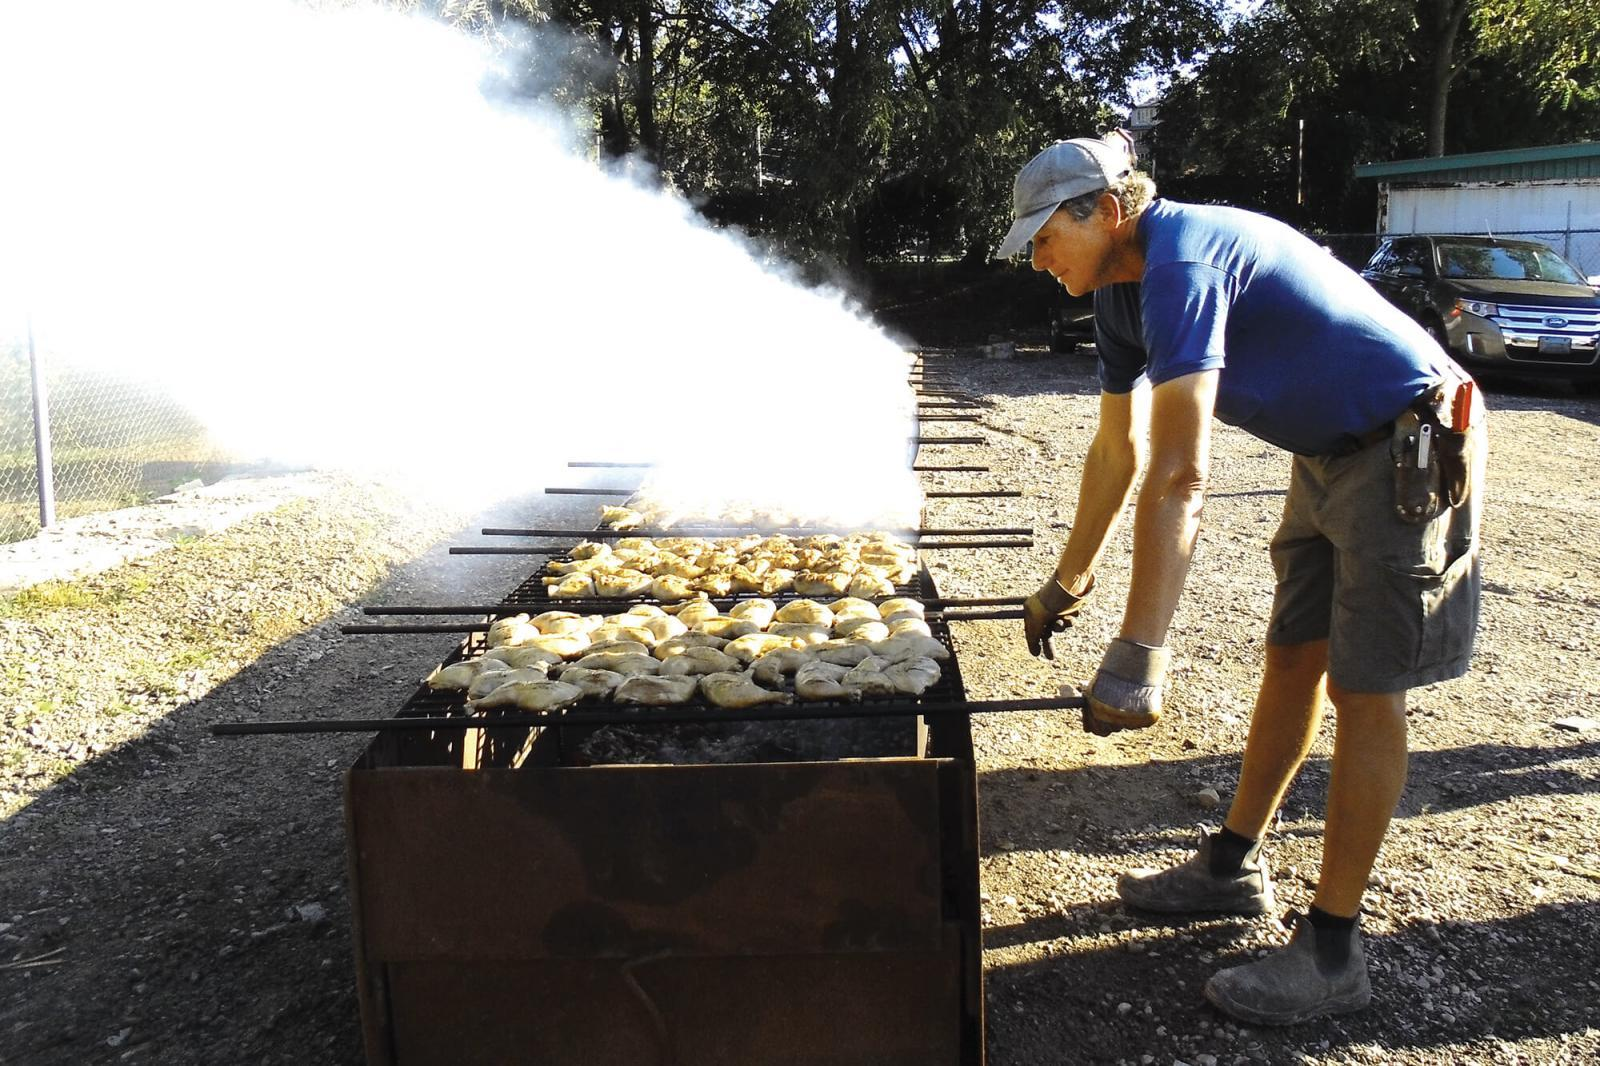 Over 275 enjoy Chapter's 25th annual chicken roast